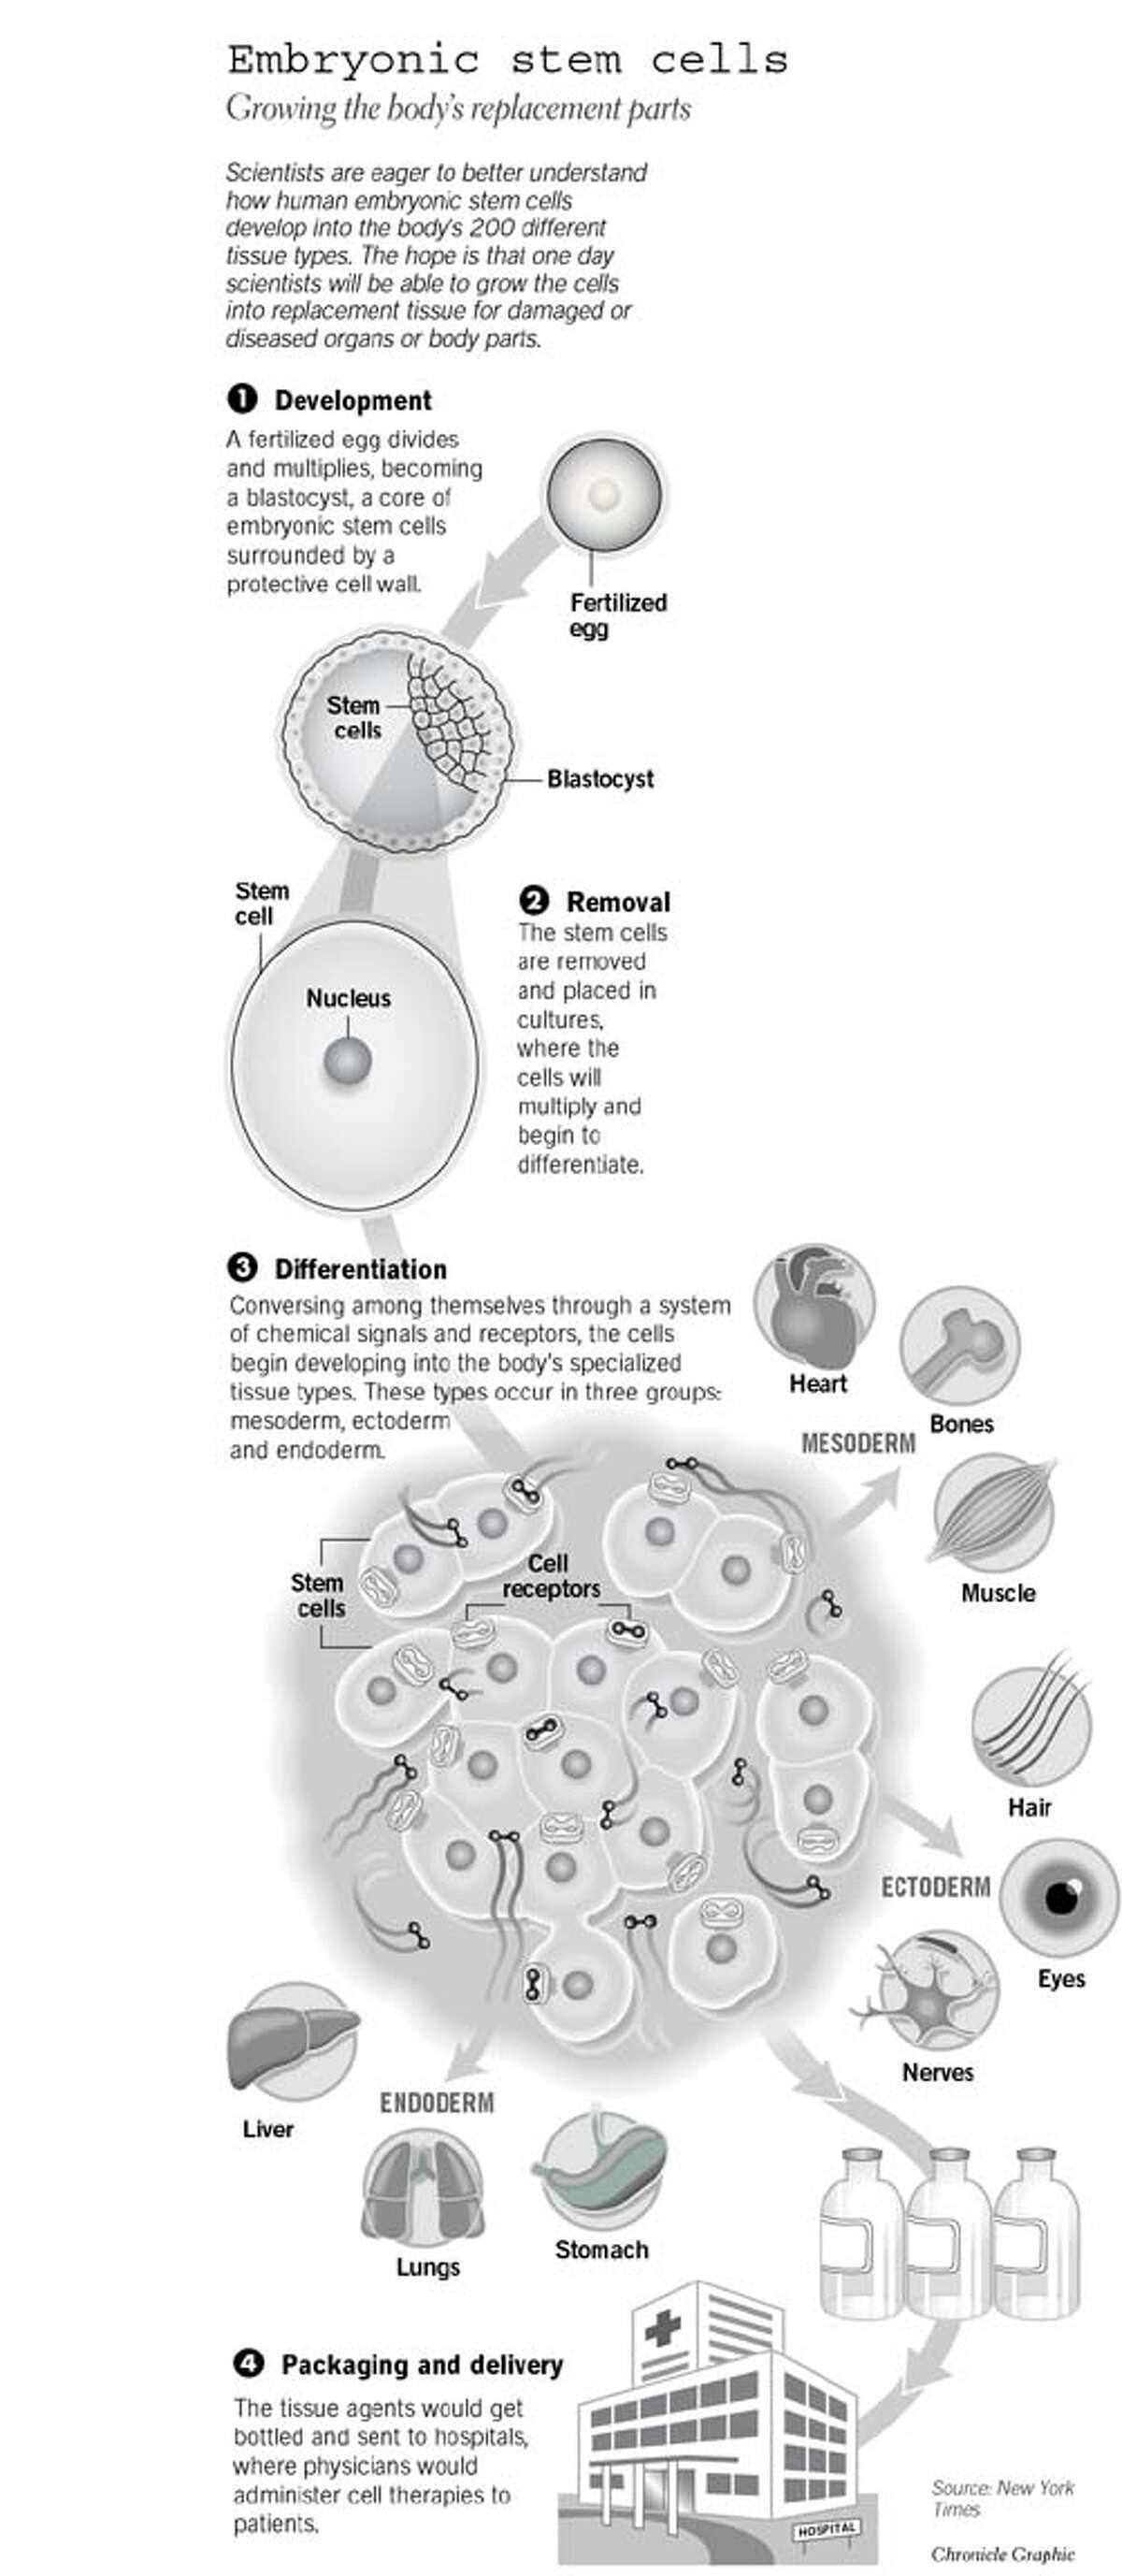 Abortion eugenics debates drive stem cell research ...